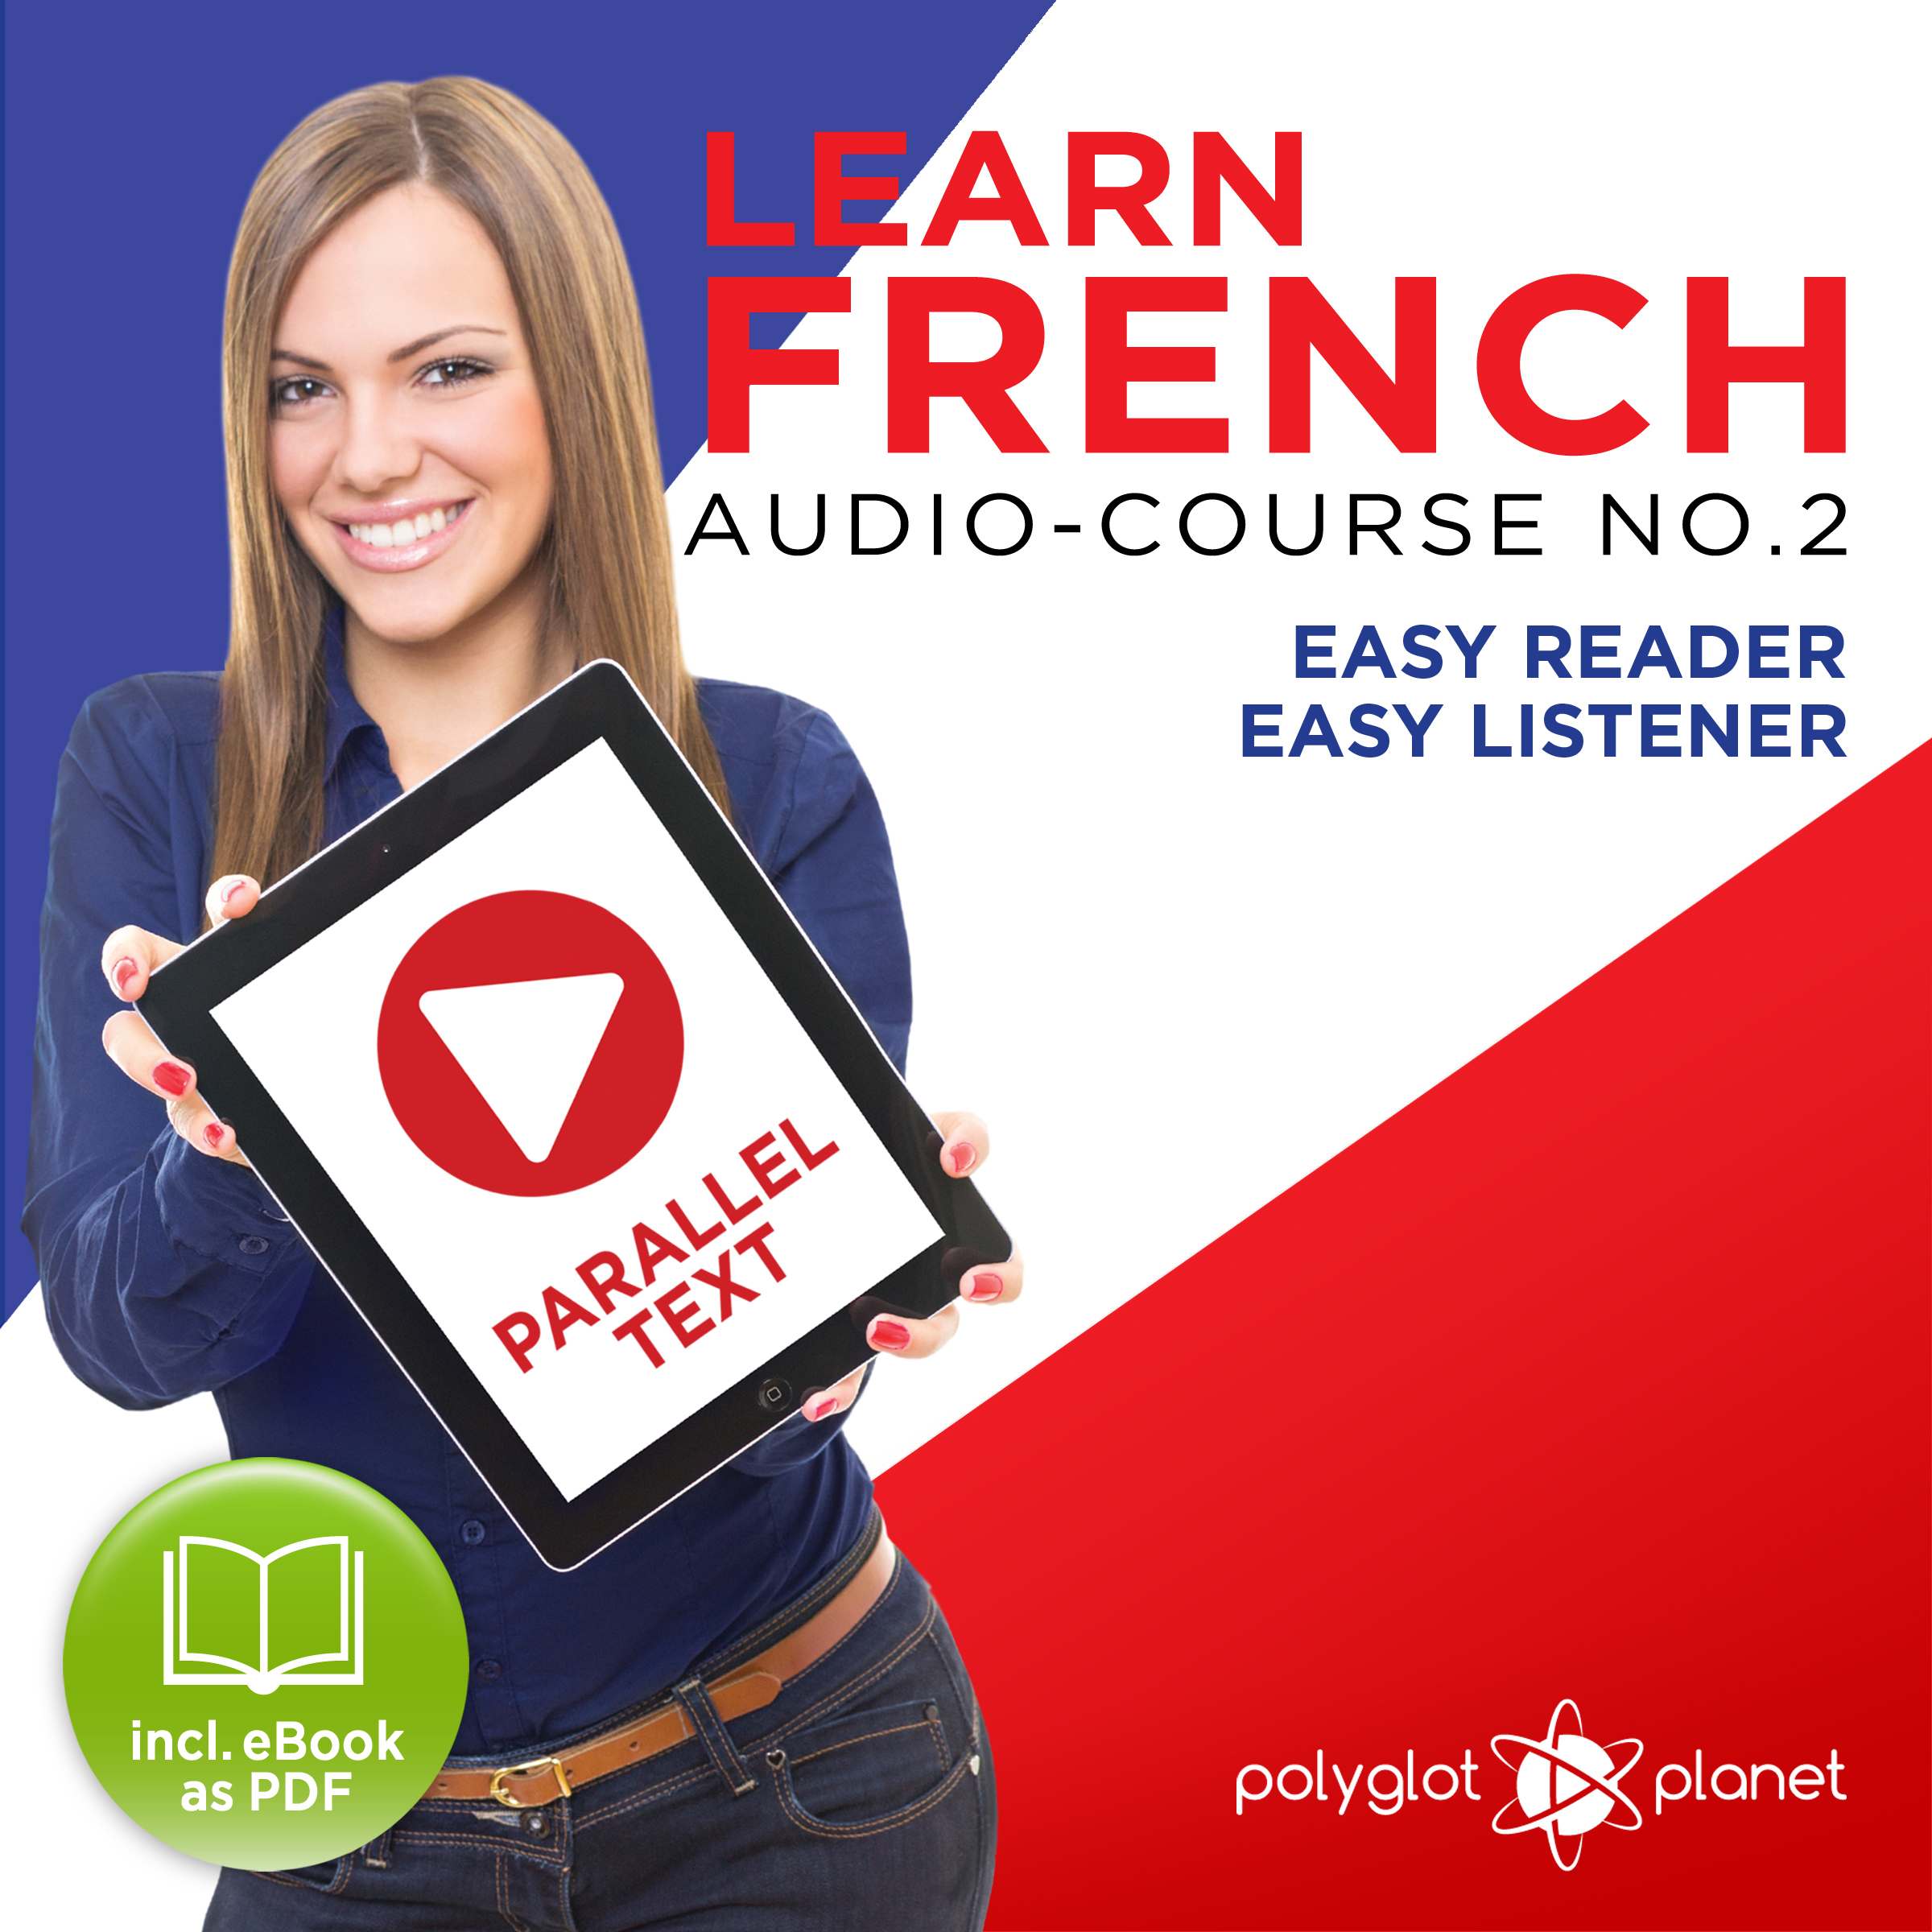 Printable Learn French- Easy Reader - Easy Listener - Parallel Text Audio Course No. 2 - The French Easy Reader - Easy Audio Learning Course Audiobook Cover Art